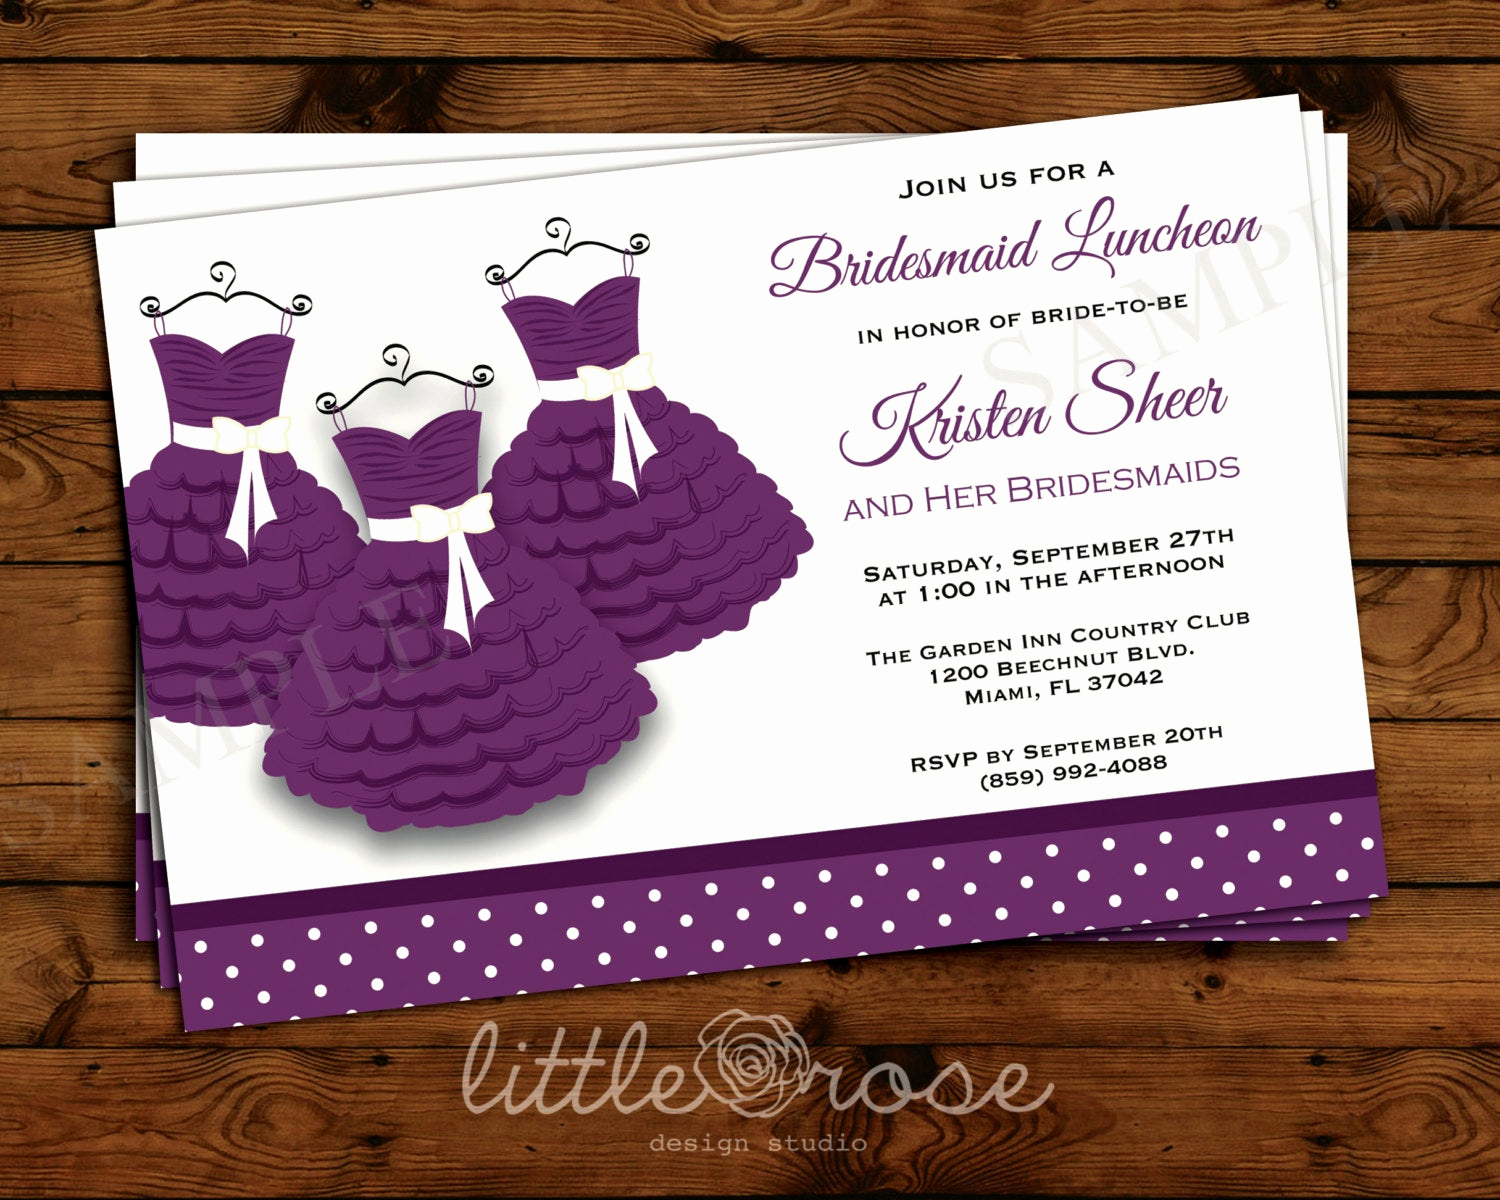 Bridesmaid Luncheon Invitation Wording Luxury Bridesmaid Luncheon Invitation Bridesmaid Brunch Invite